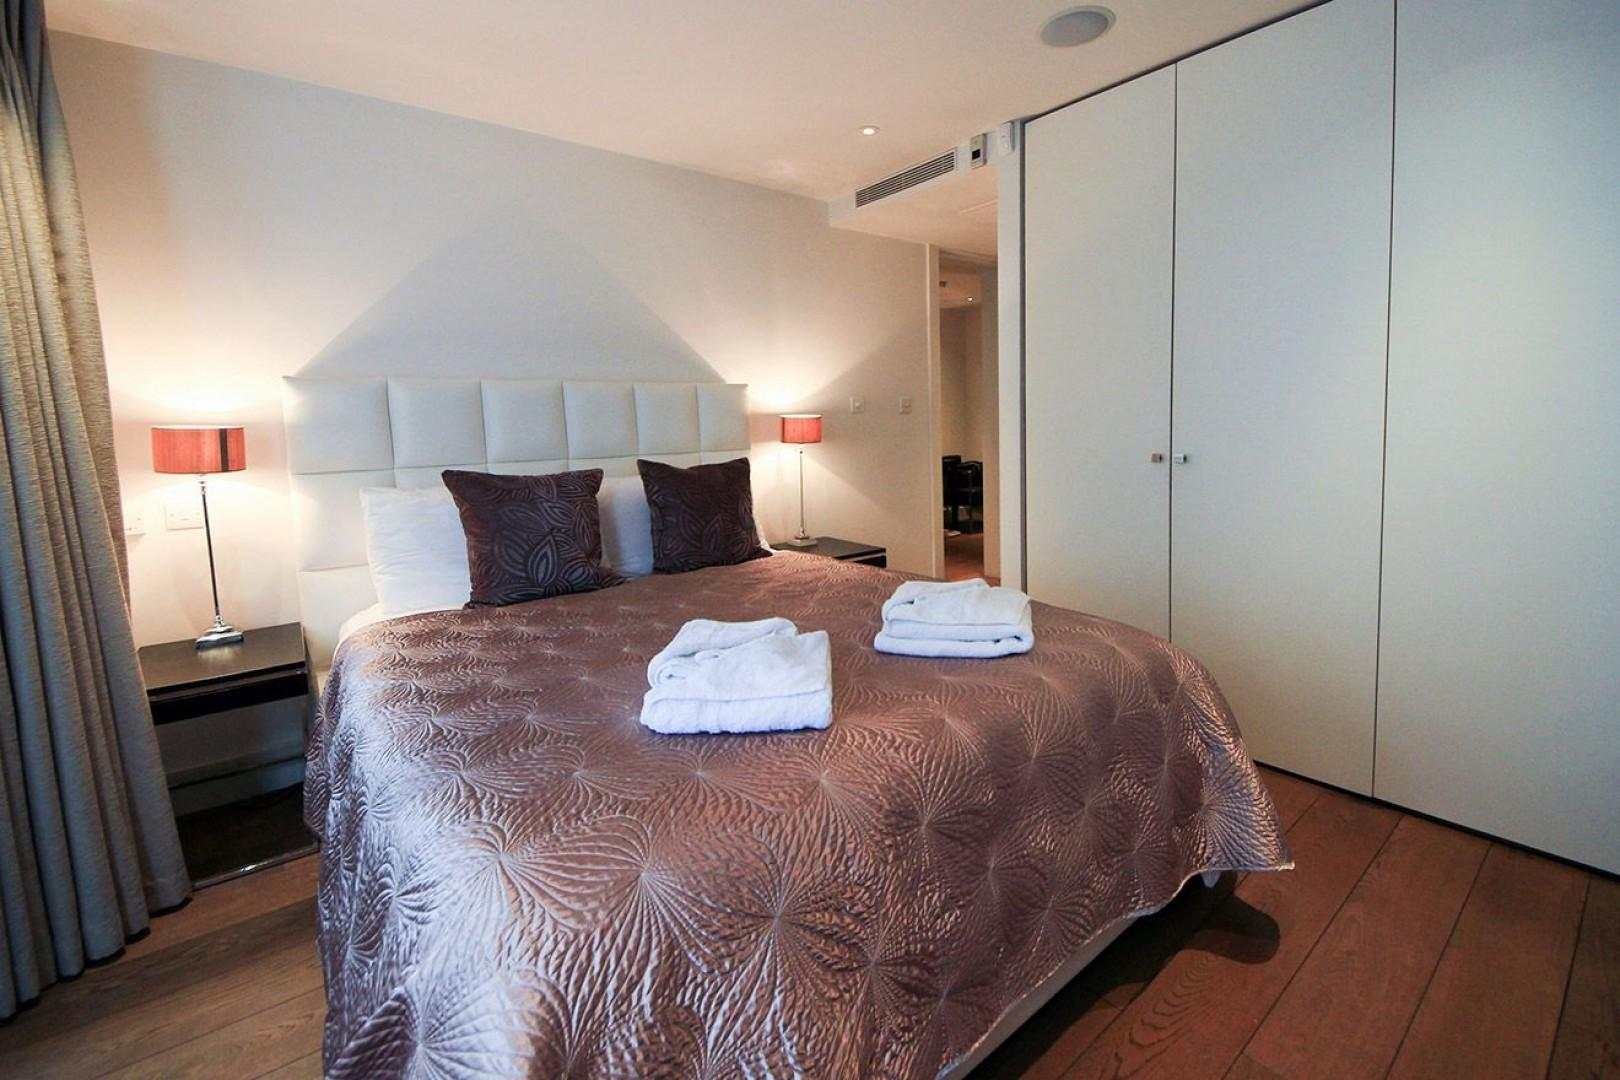 Large cupboards in the first bedroom provide extra storage